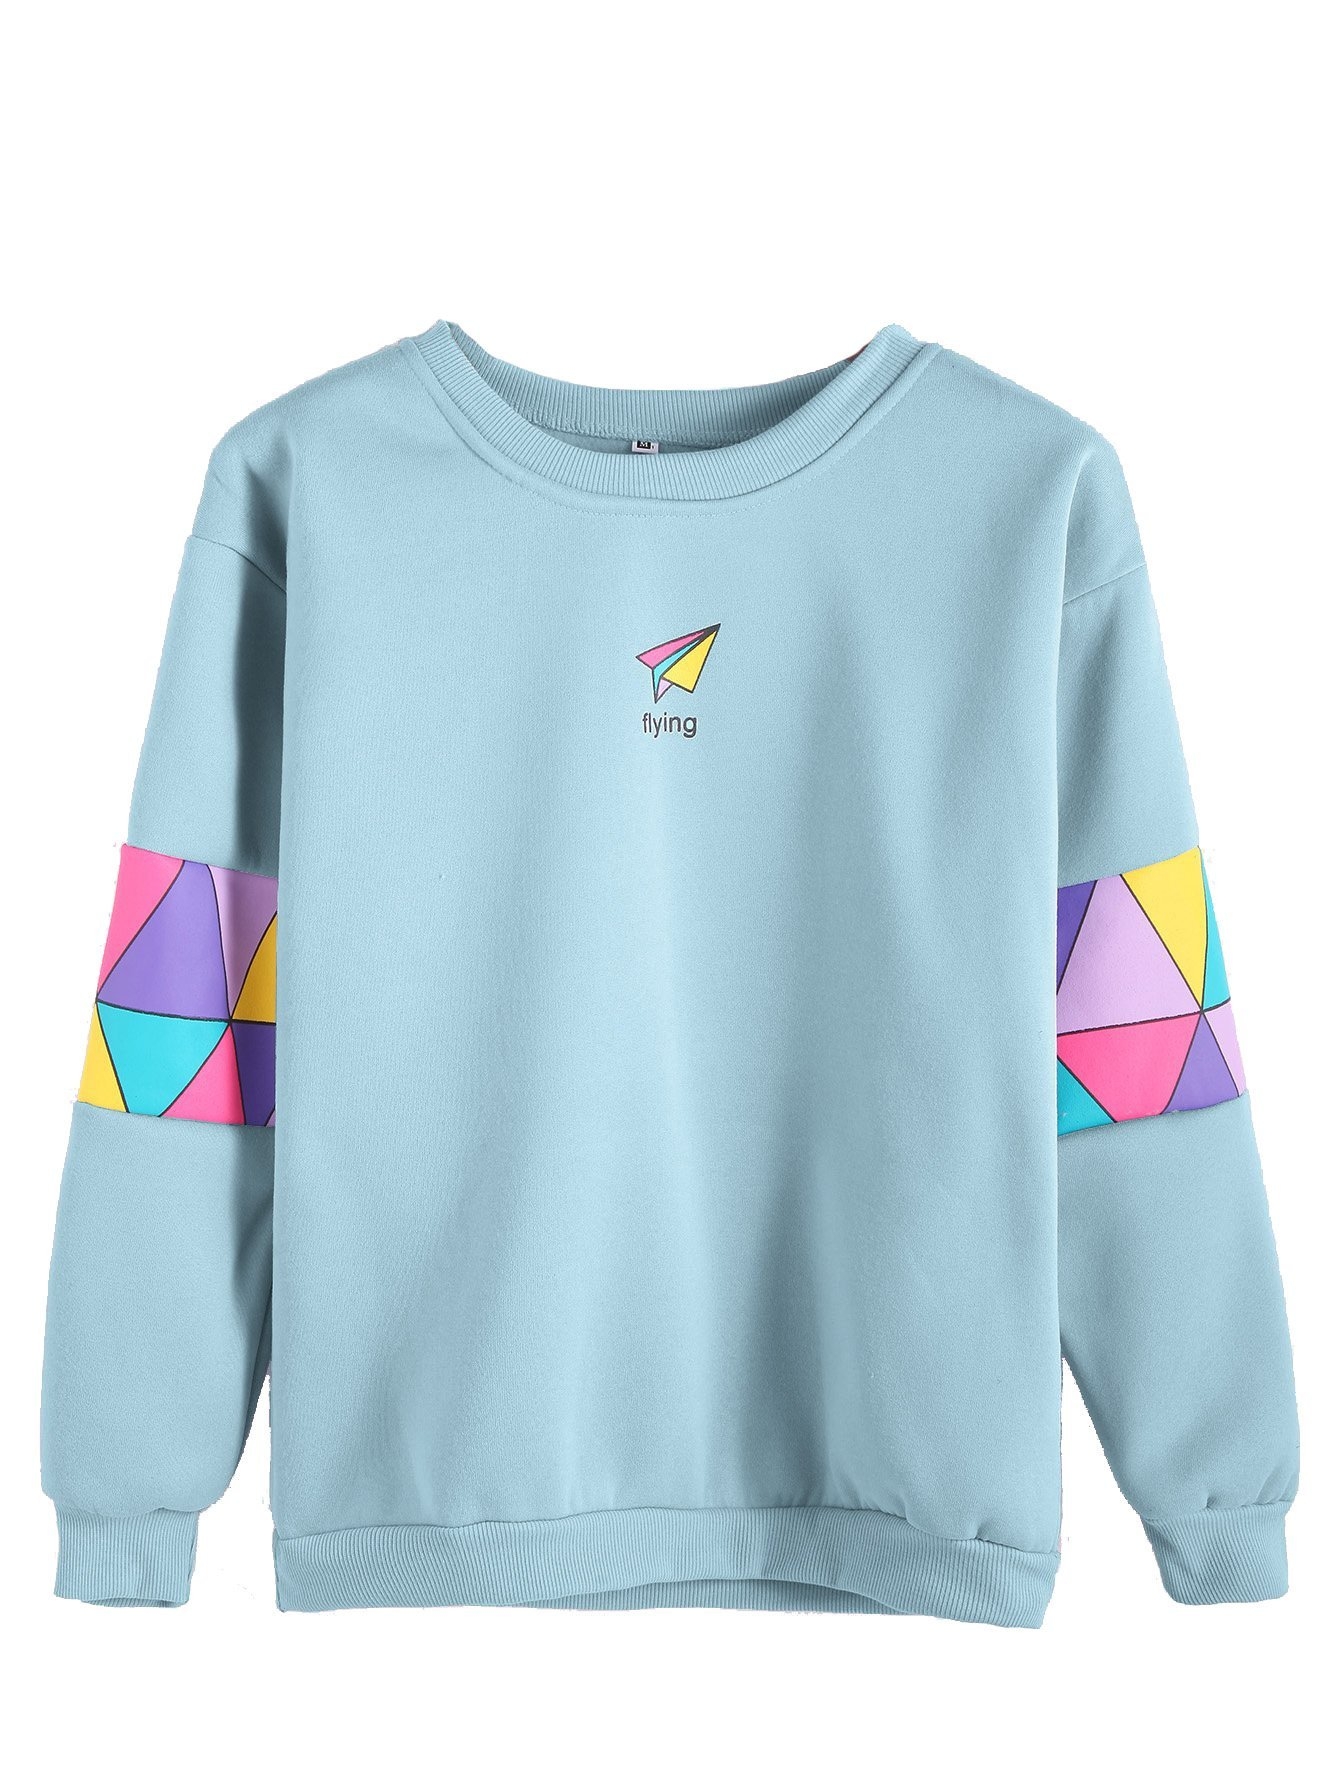 ROMWE Women's Top Long Sleeve Color Block Paper Airplane Graphic Print Patchwork Trim Tee Shirt Sweatshirt,Blue,L=US S